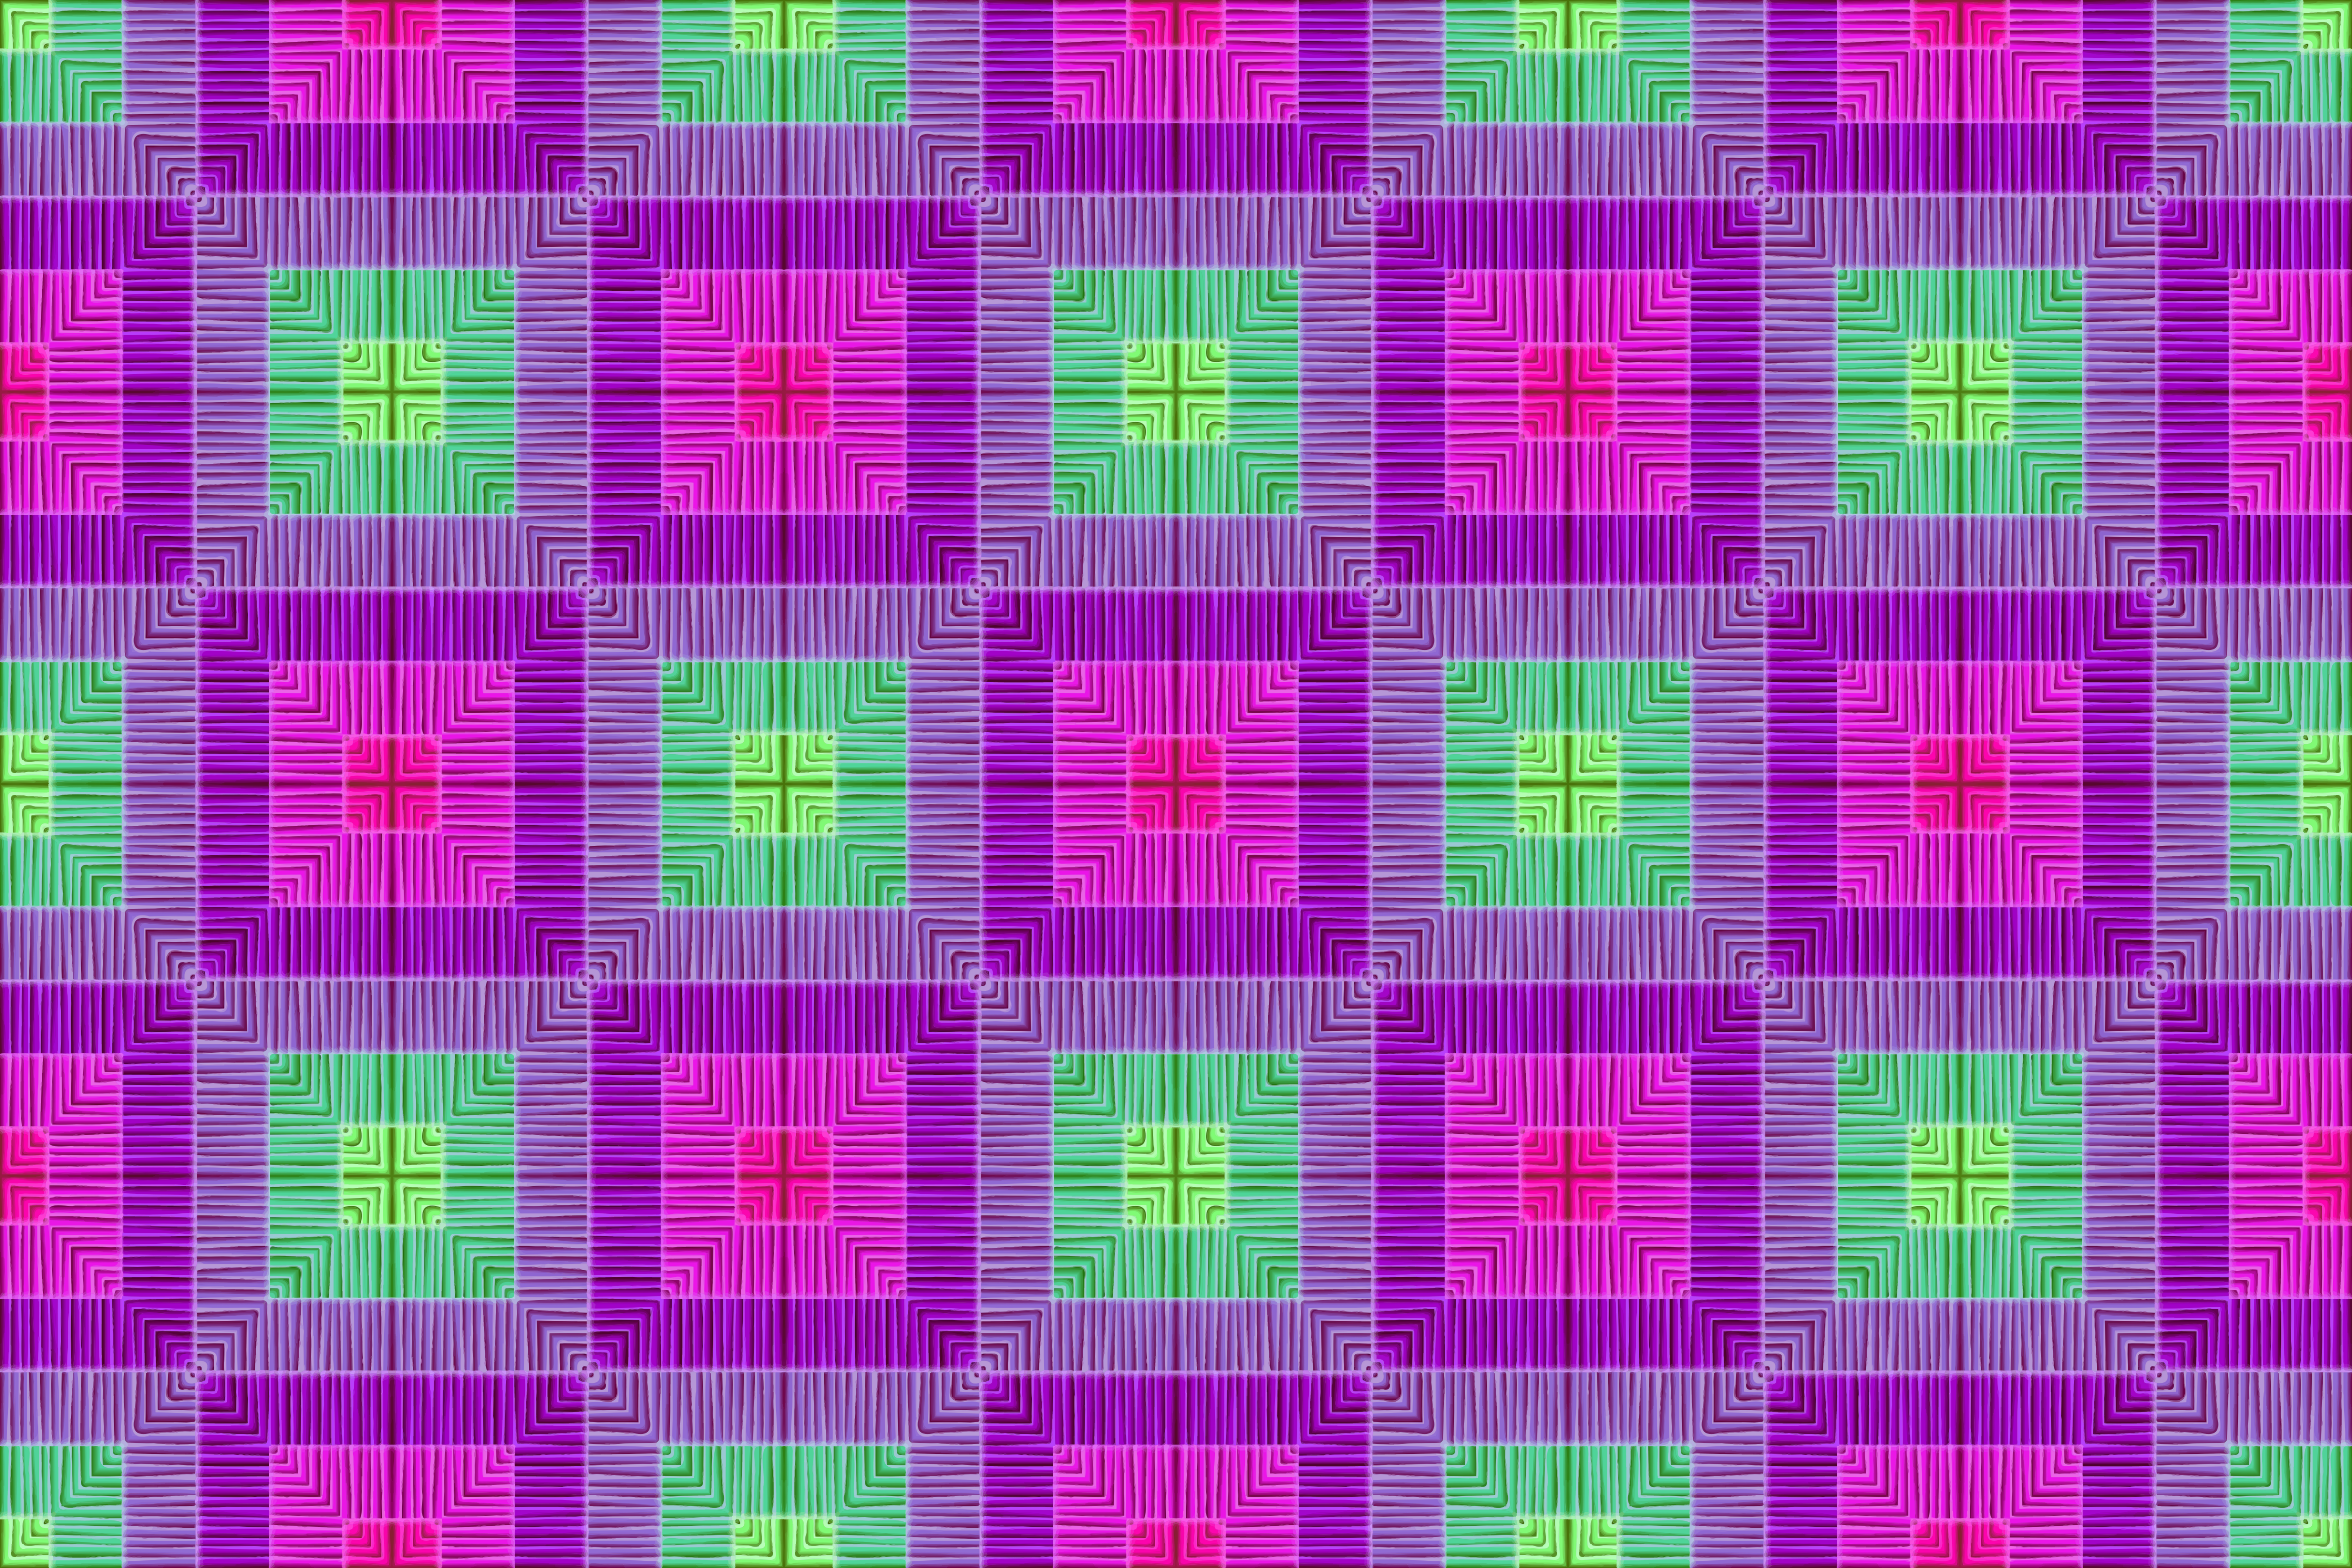 Background pattern 245 (colour 6) by Firkin